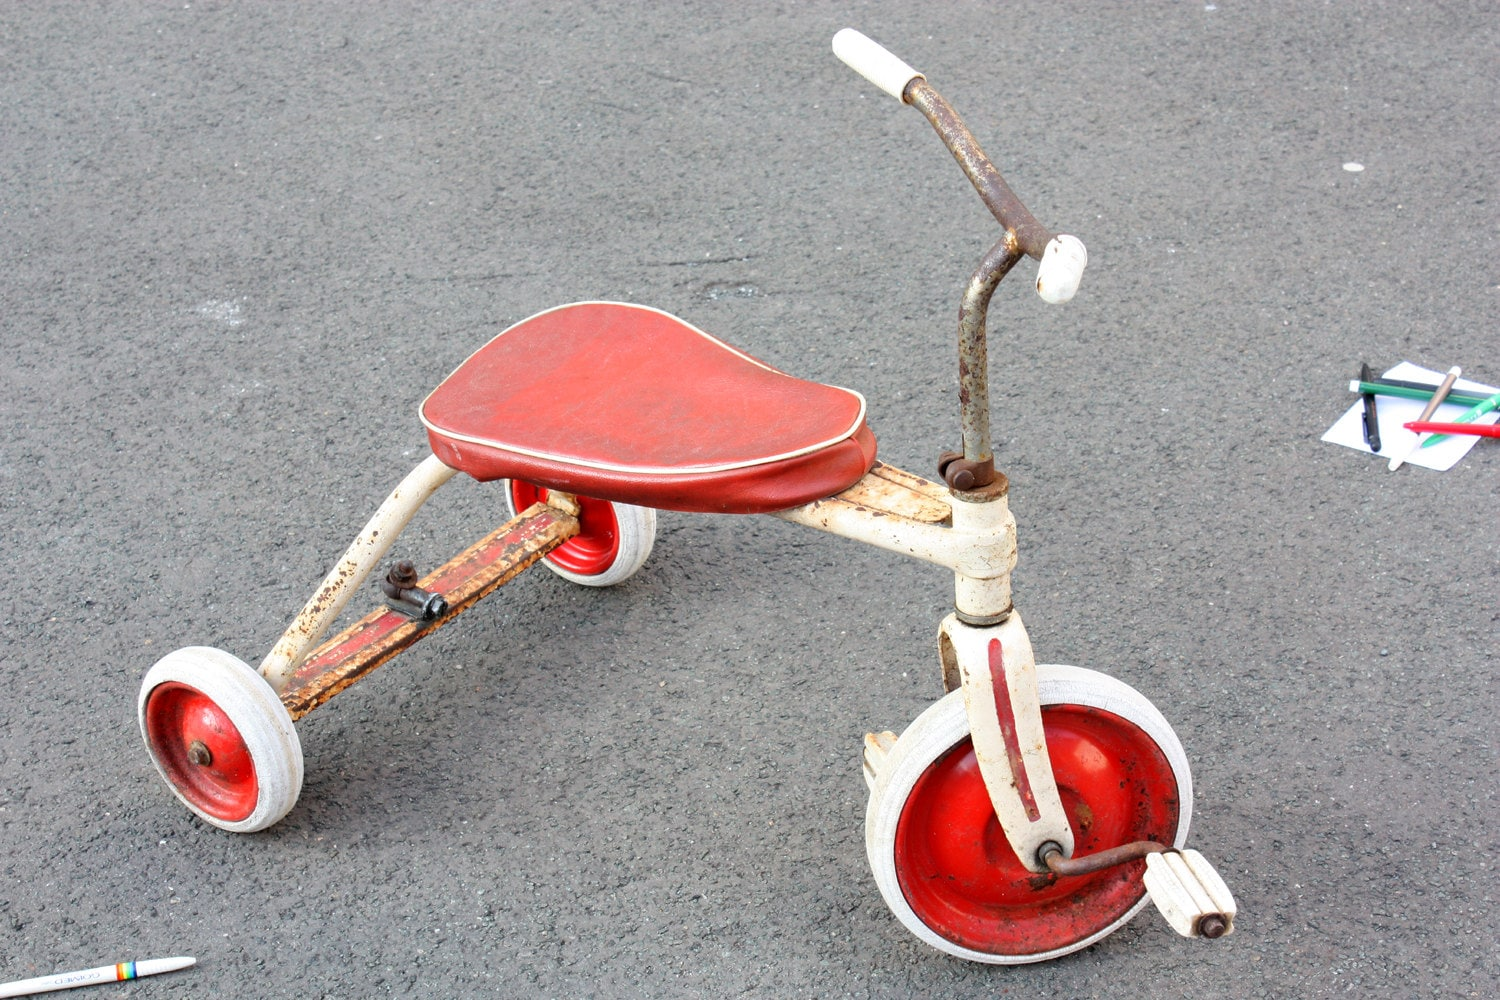 Vintage Toys From The 60s : Tricycle s vintage trike children toy kids